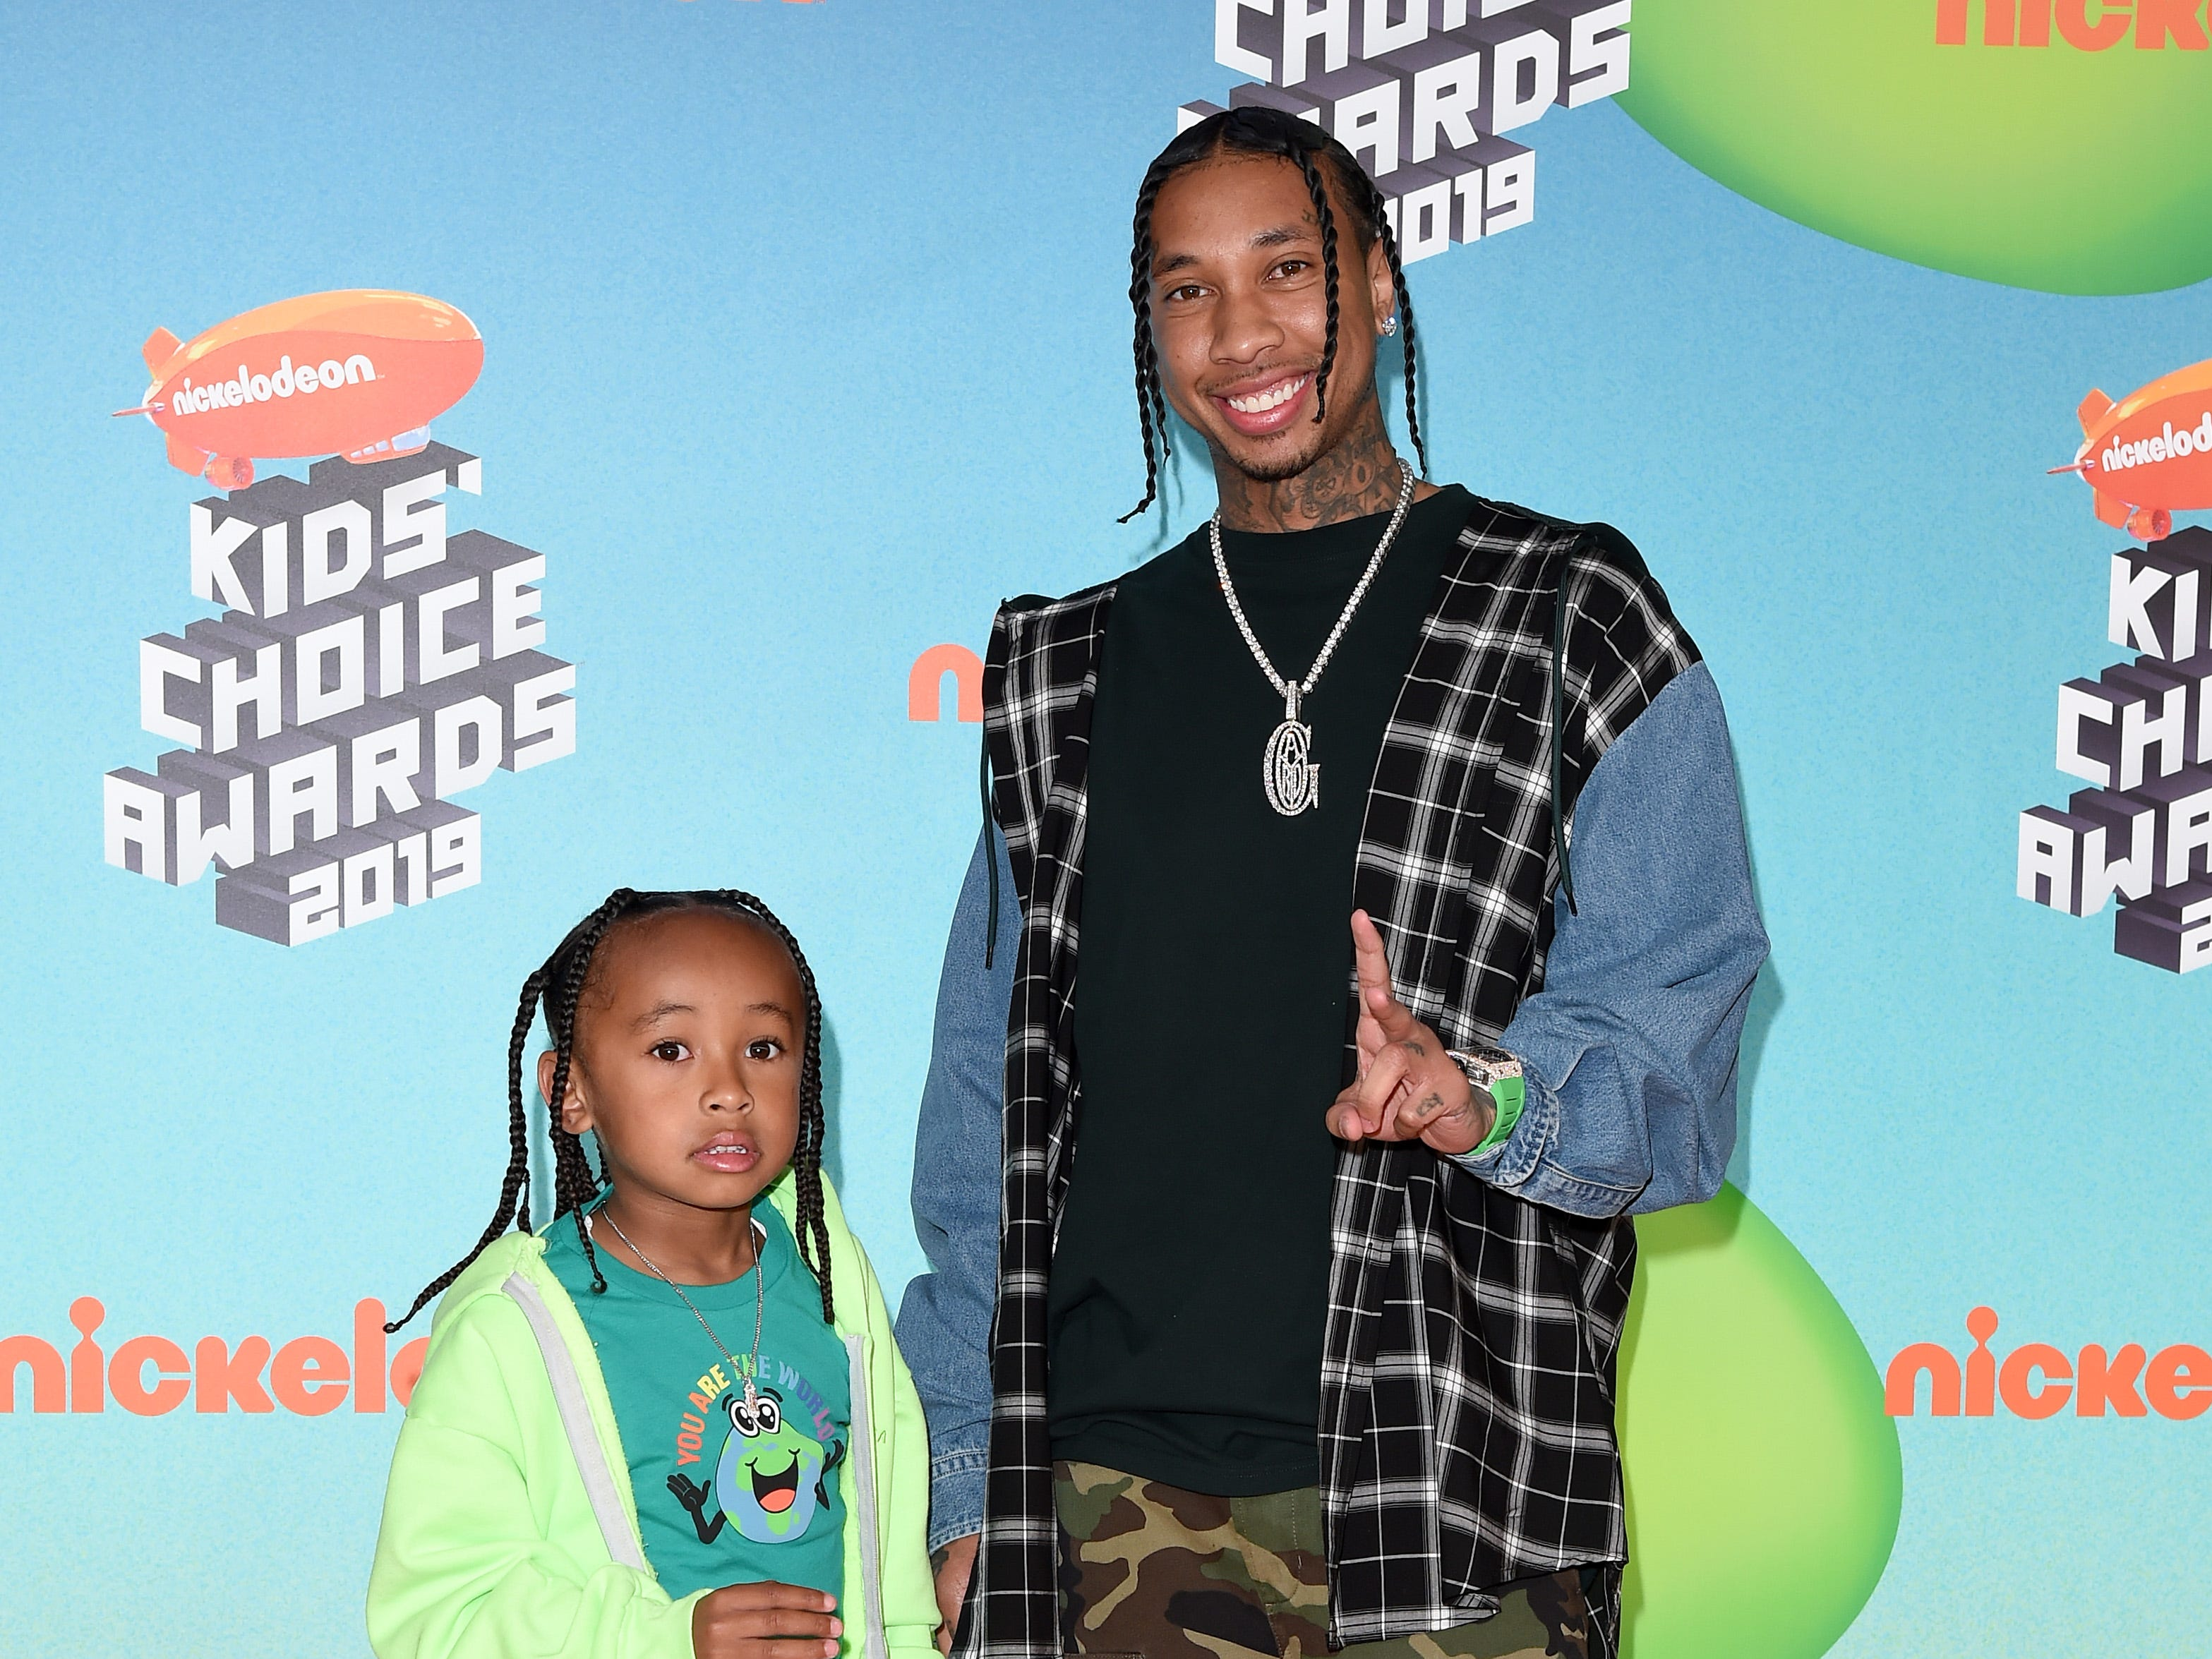 LOS ANGELES, CALIFORNIA - MARCH 23: Tyga and King Cairo Stevenson attend Nickelodeon's 2019 Kids' Choice Awards at Galen Center on March 23, 2019 in Los Angeles, California. (Photo by Axelle/Bauer-Griffin/FilmMagic) ORG XMIT: 775314636 ORIG FILE ID: 1137875567